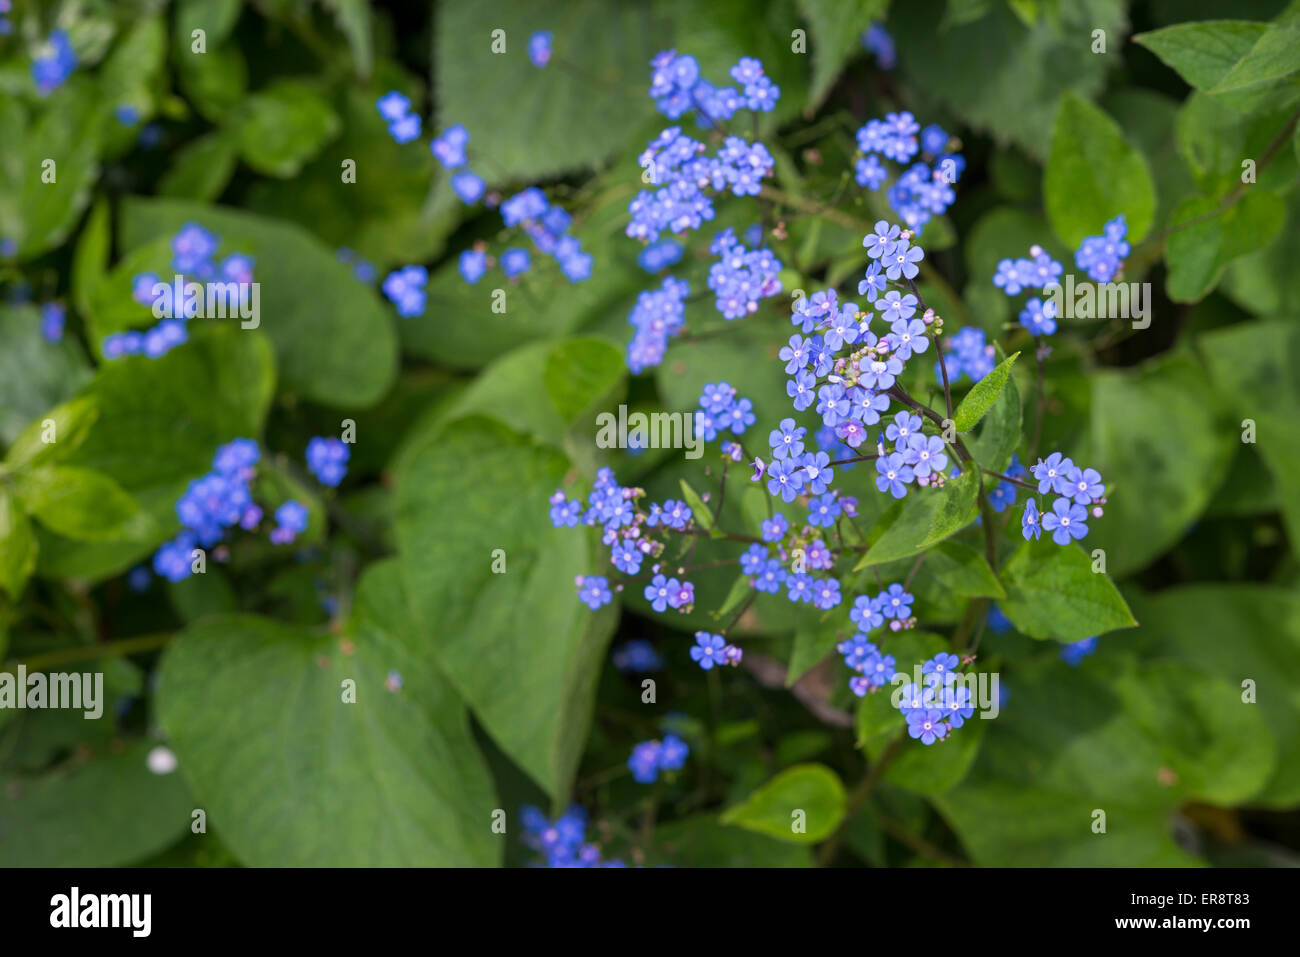 Brunnera Macrophylla With Heads Of Tiny Rich Blue Flowers In Spring